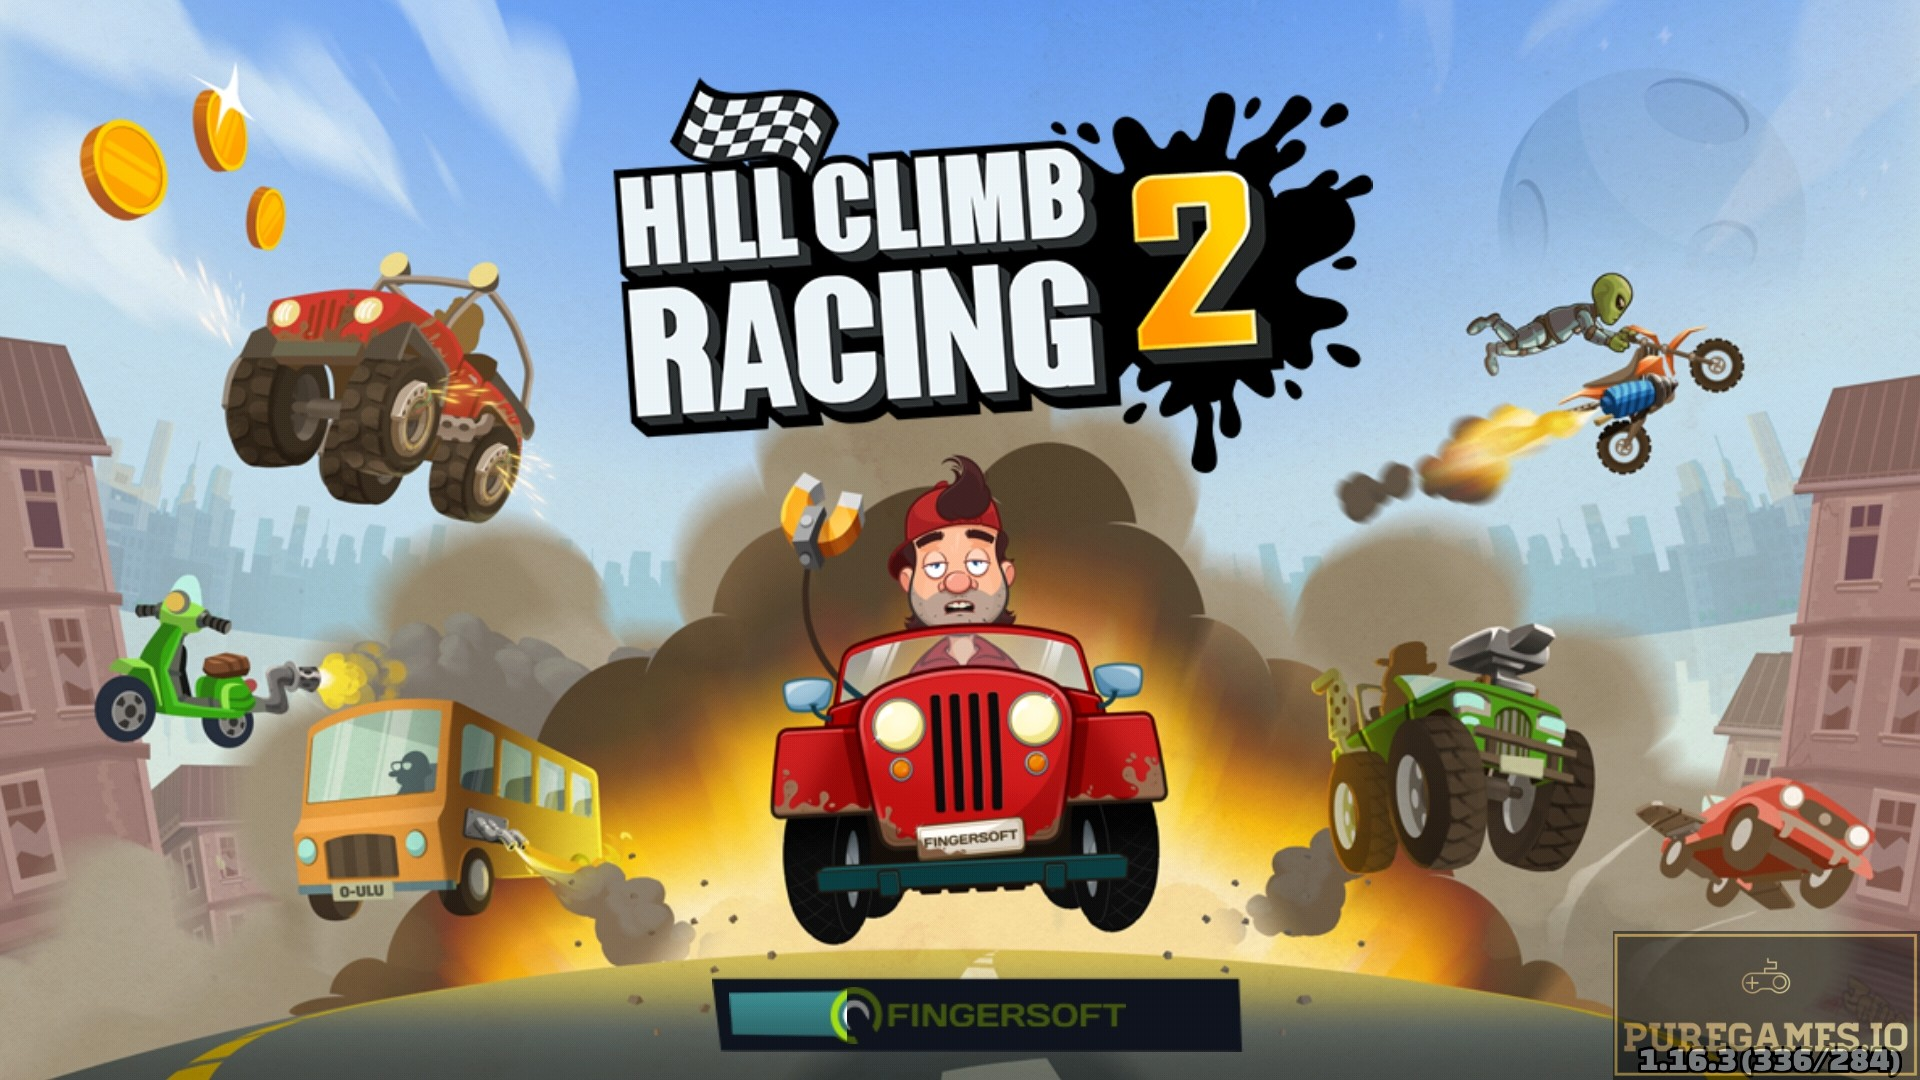 Download Hill Climb Racing 2 APK - For Android and iOS 4